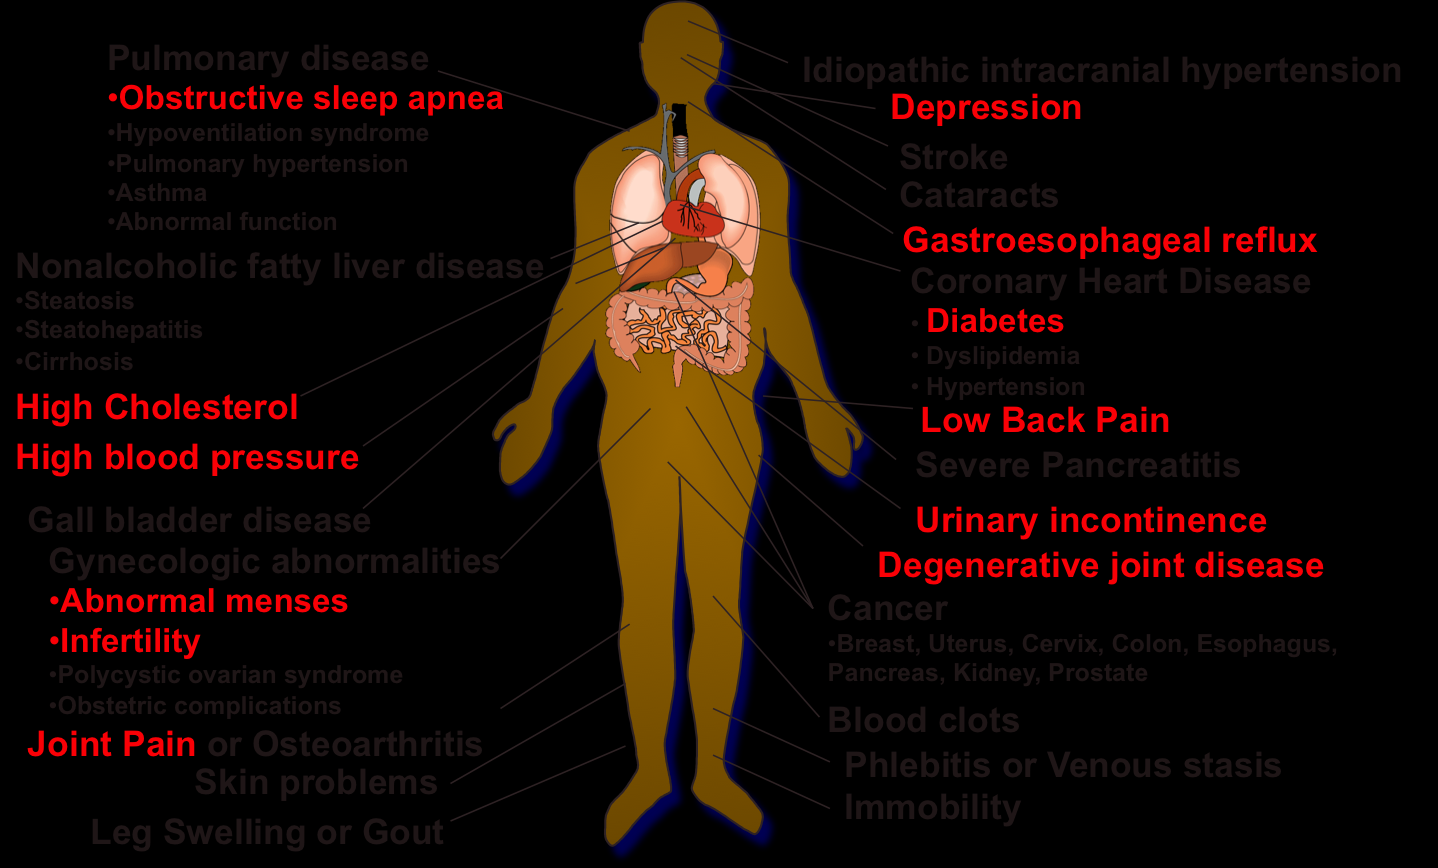 Health Consequences of Obesity The significance of obesity from a health care point of view is its association with many common medical conditions such as diabetes, high blood pressure and arthritis